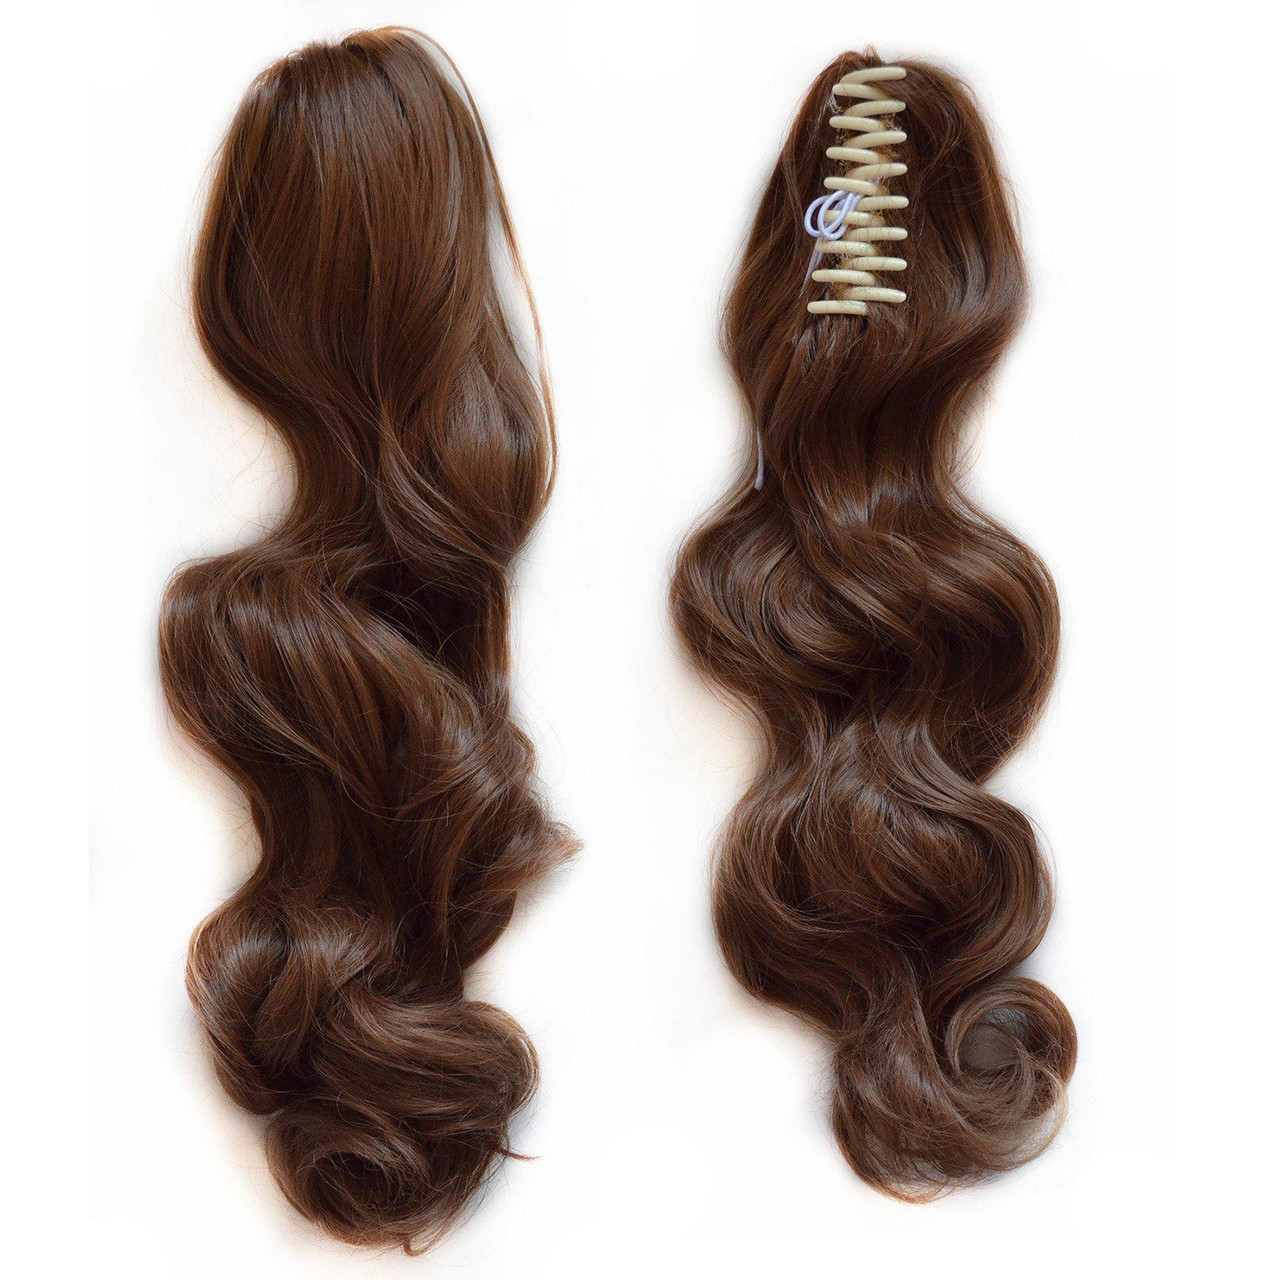 Sunny 18inch Remy Hair Extension Ponytail Brown Highlight Brazilian Human Clip In 100